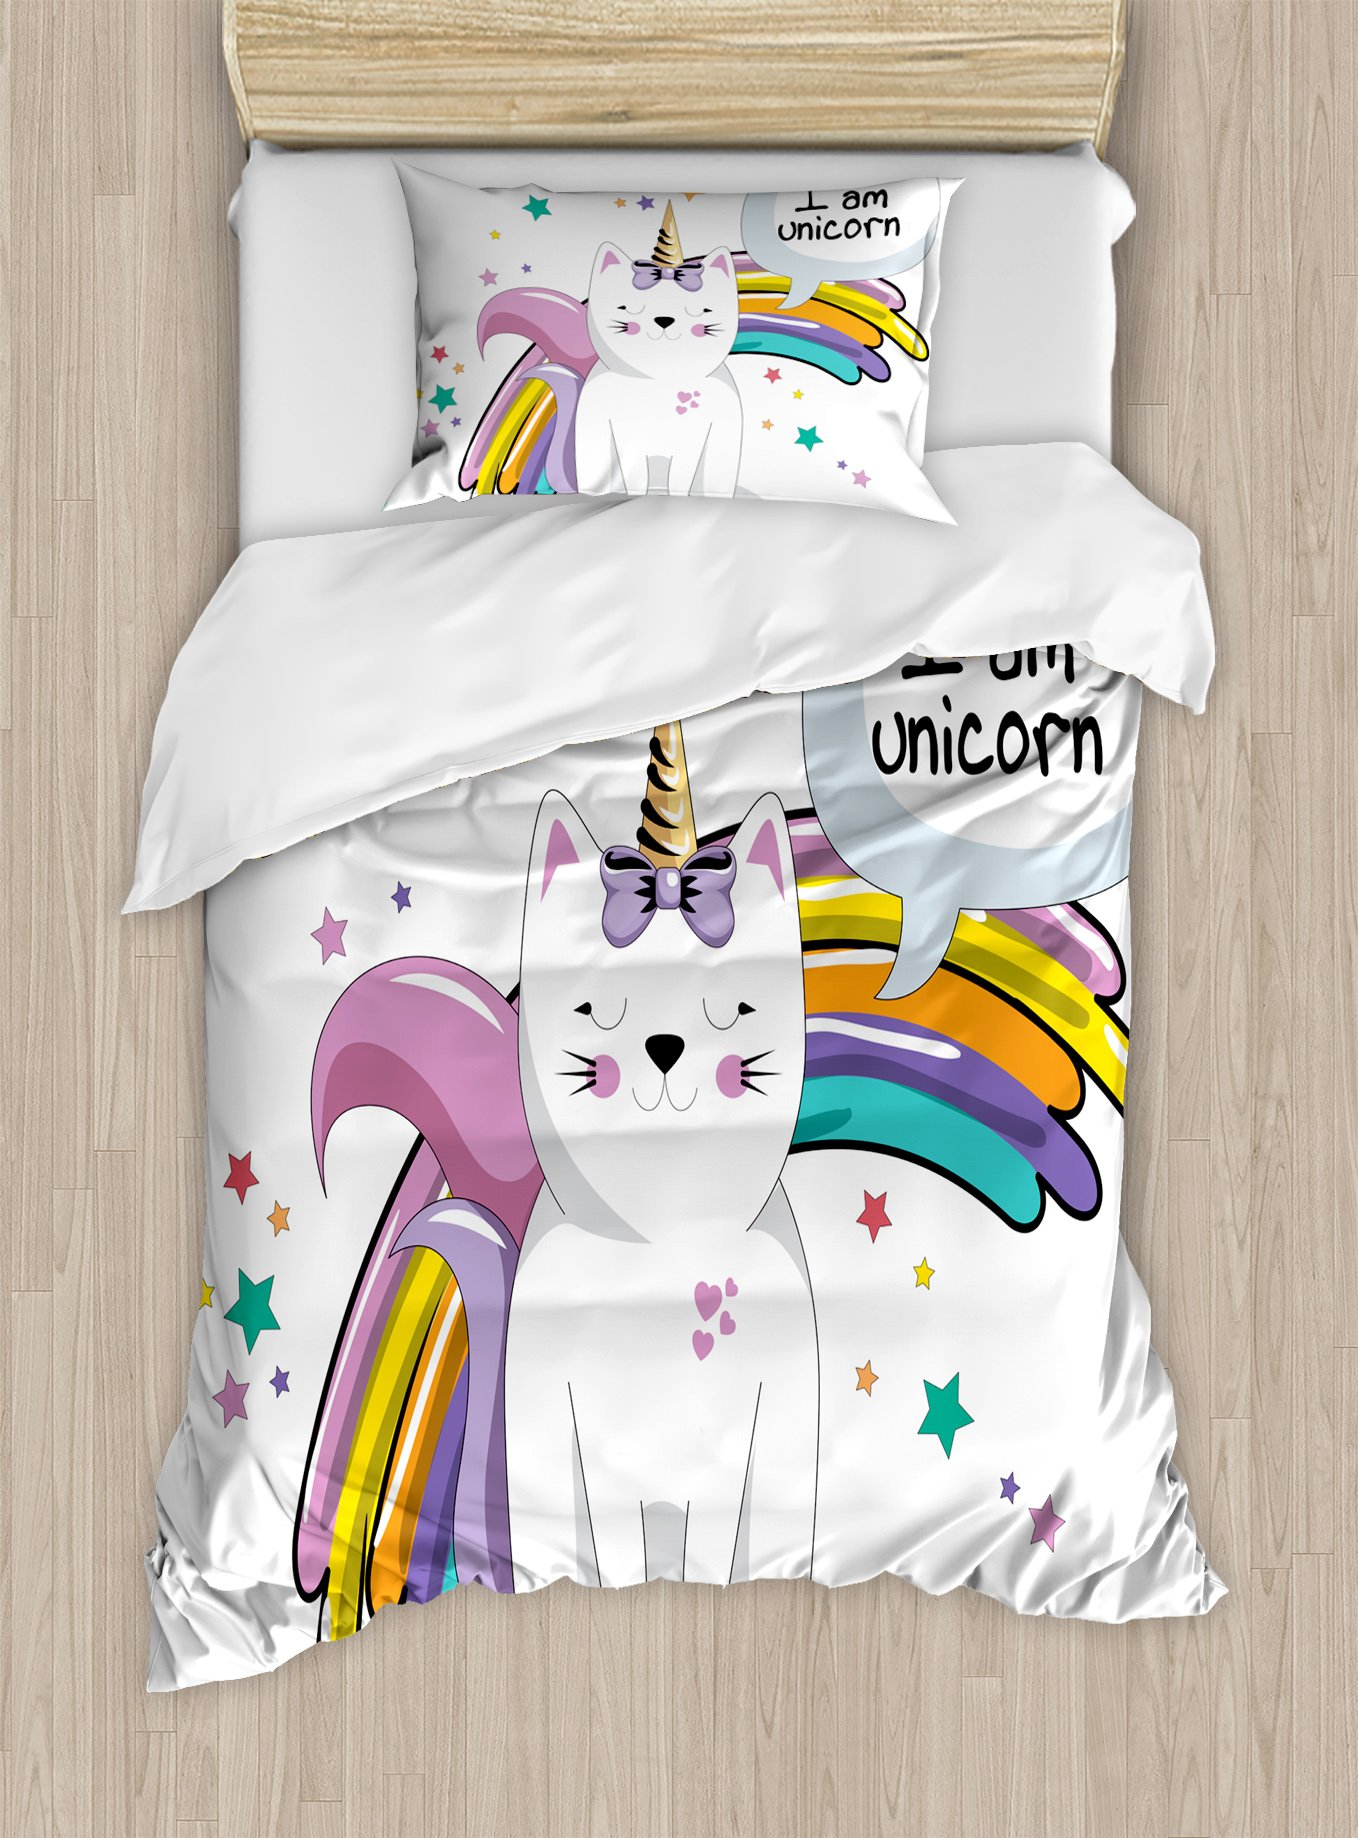 Ambesonne Unicorn Cat Duvet Cover Set Twin Size, Fairy Animal with Ice Cream Cone Bow Stars and Rainbow Kids Imagination Fiction, Decorative 2 Piece Bedding Set with 1 Pillow Sham, Multicolor